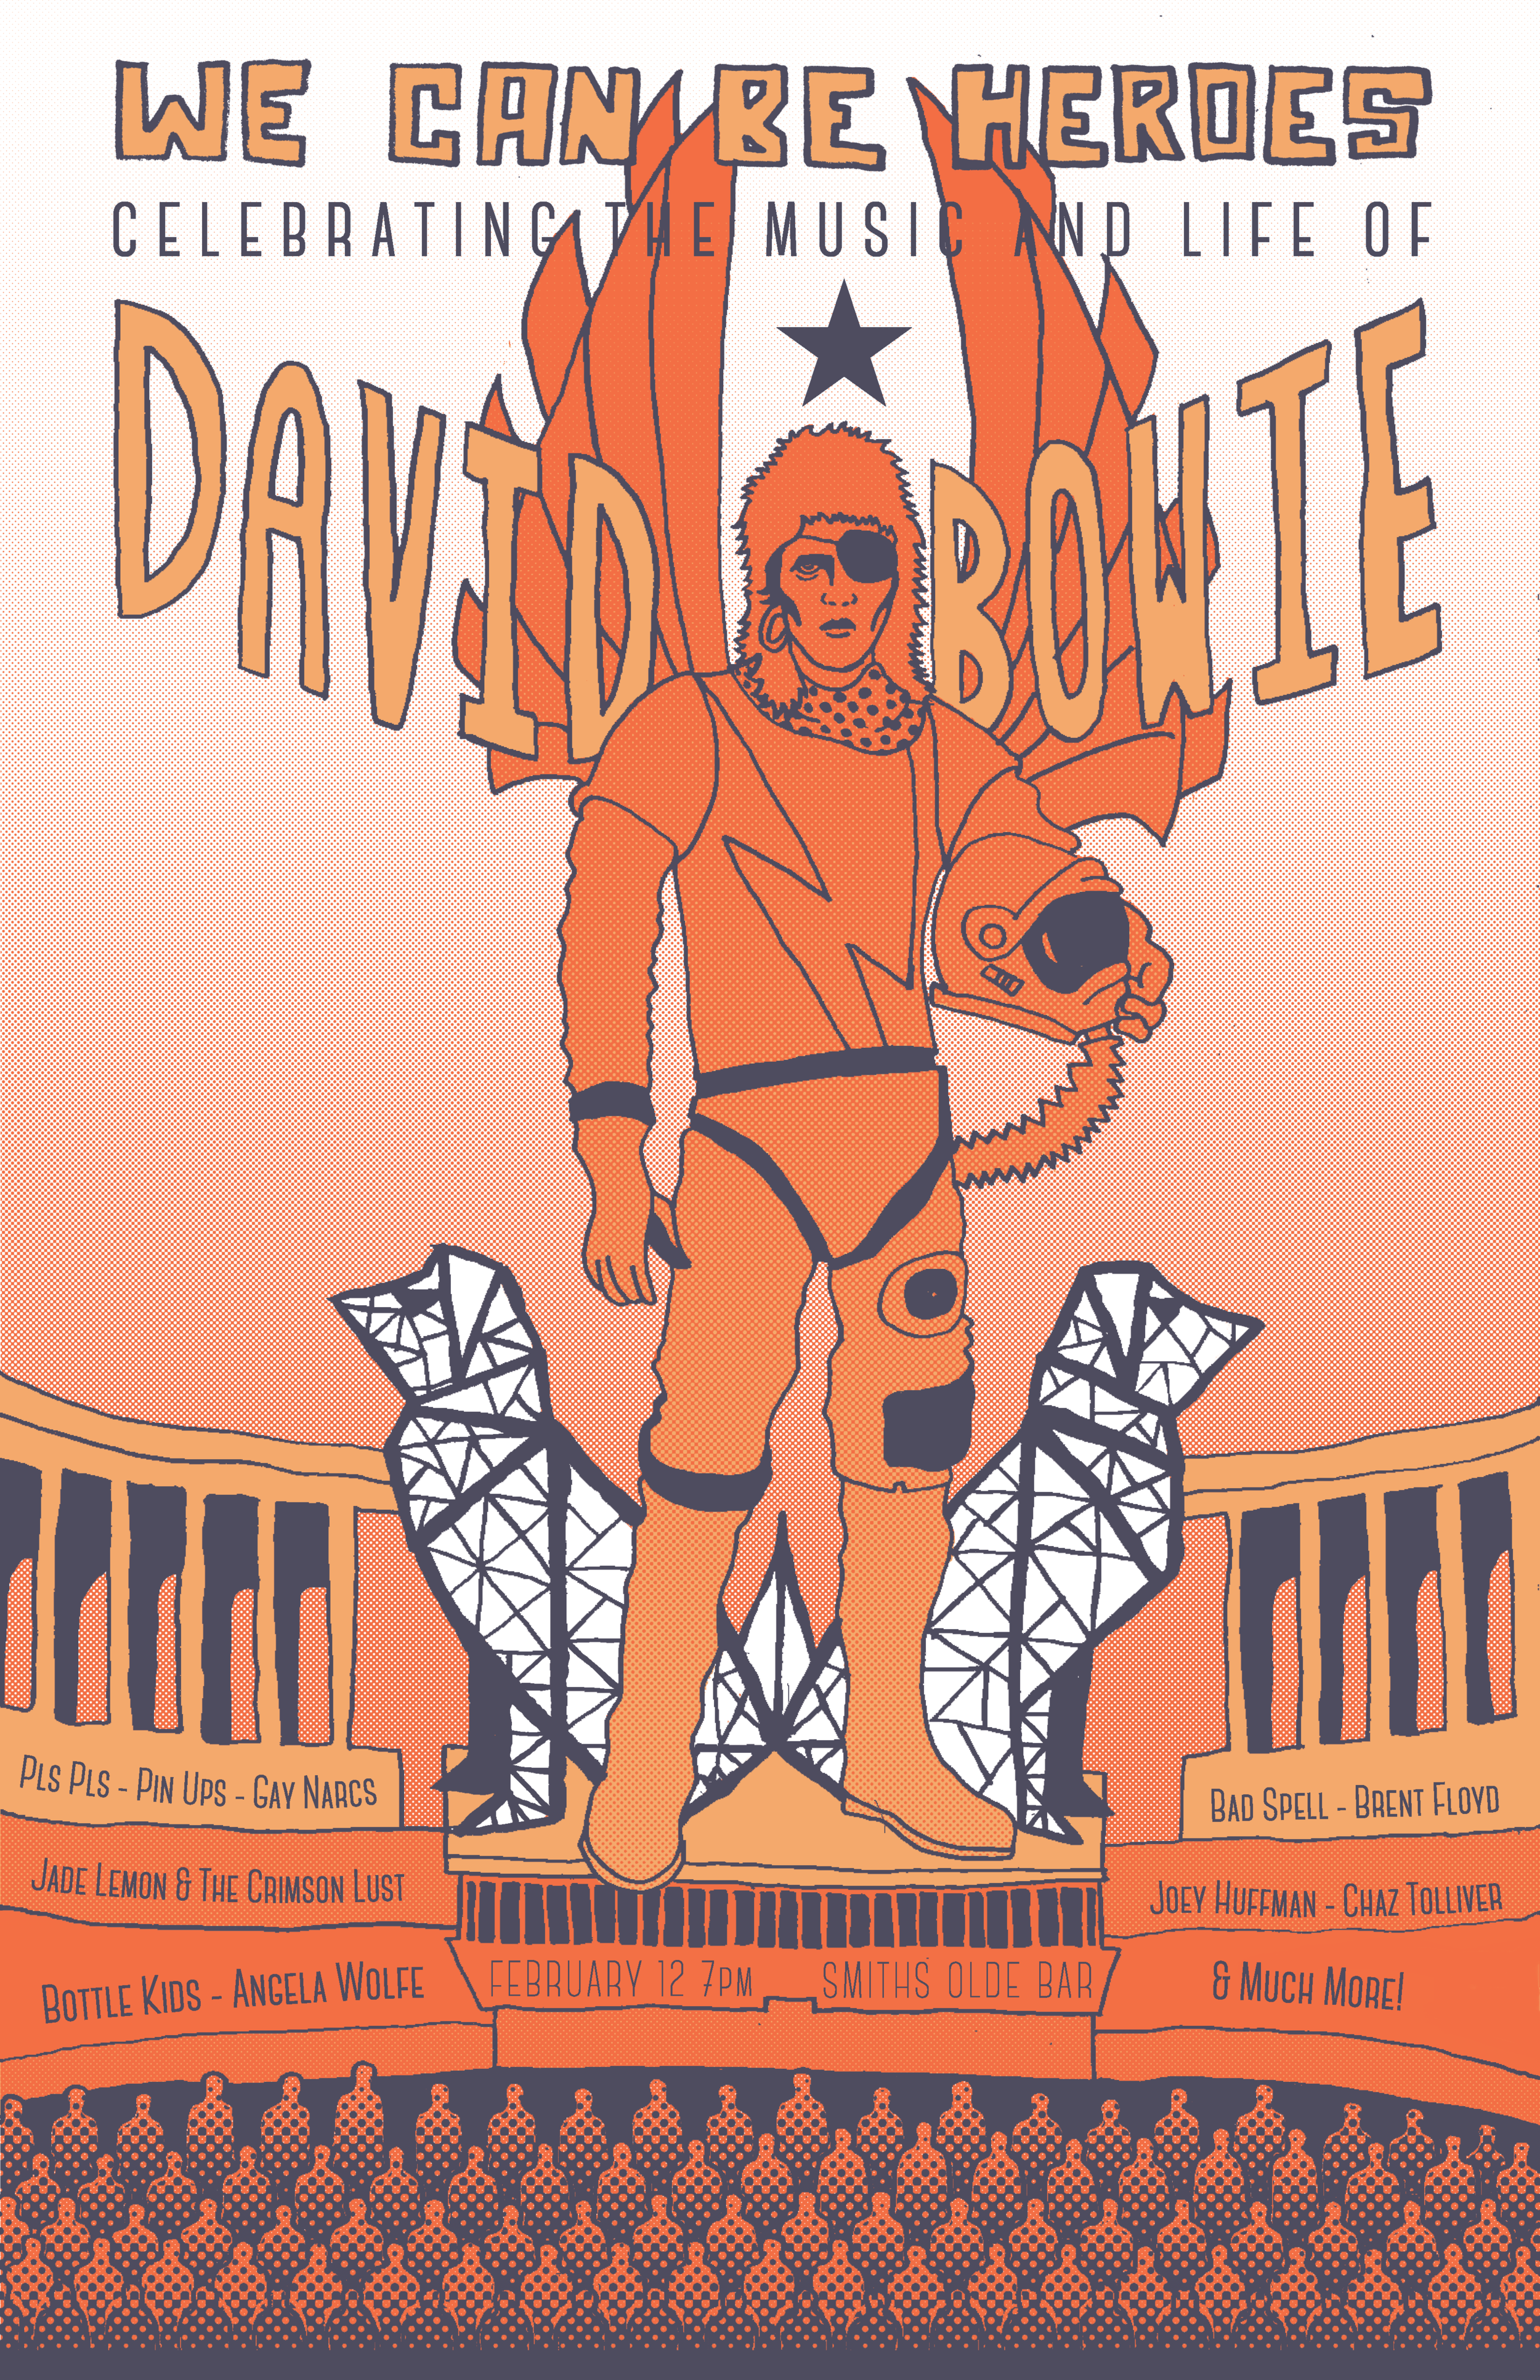 David Bowie Tribute Show Poster